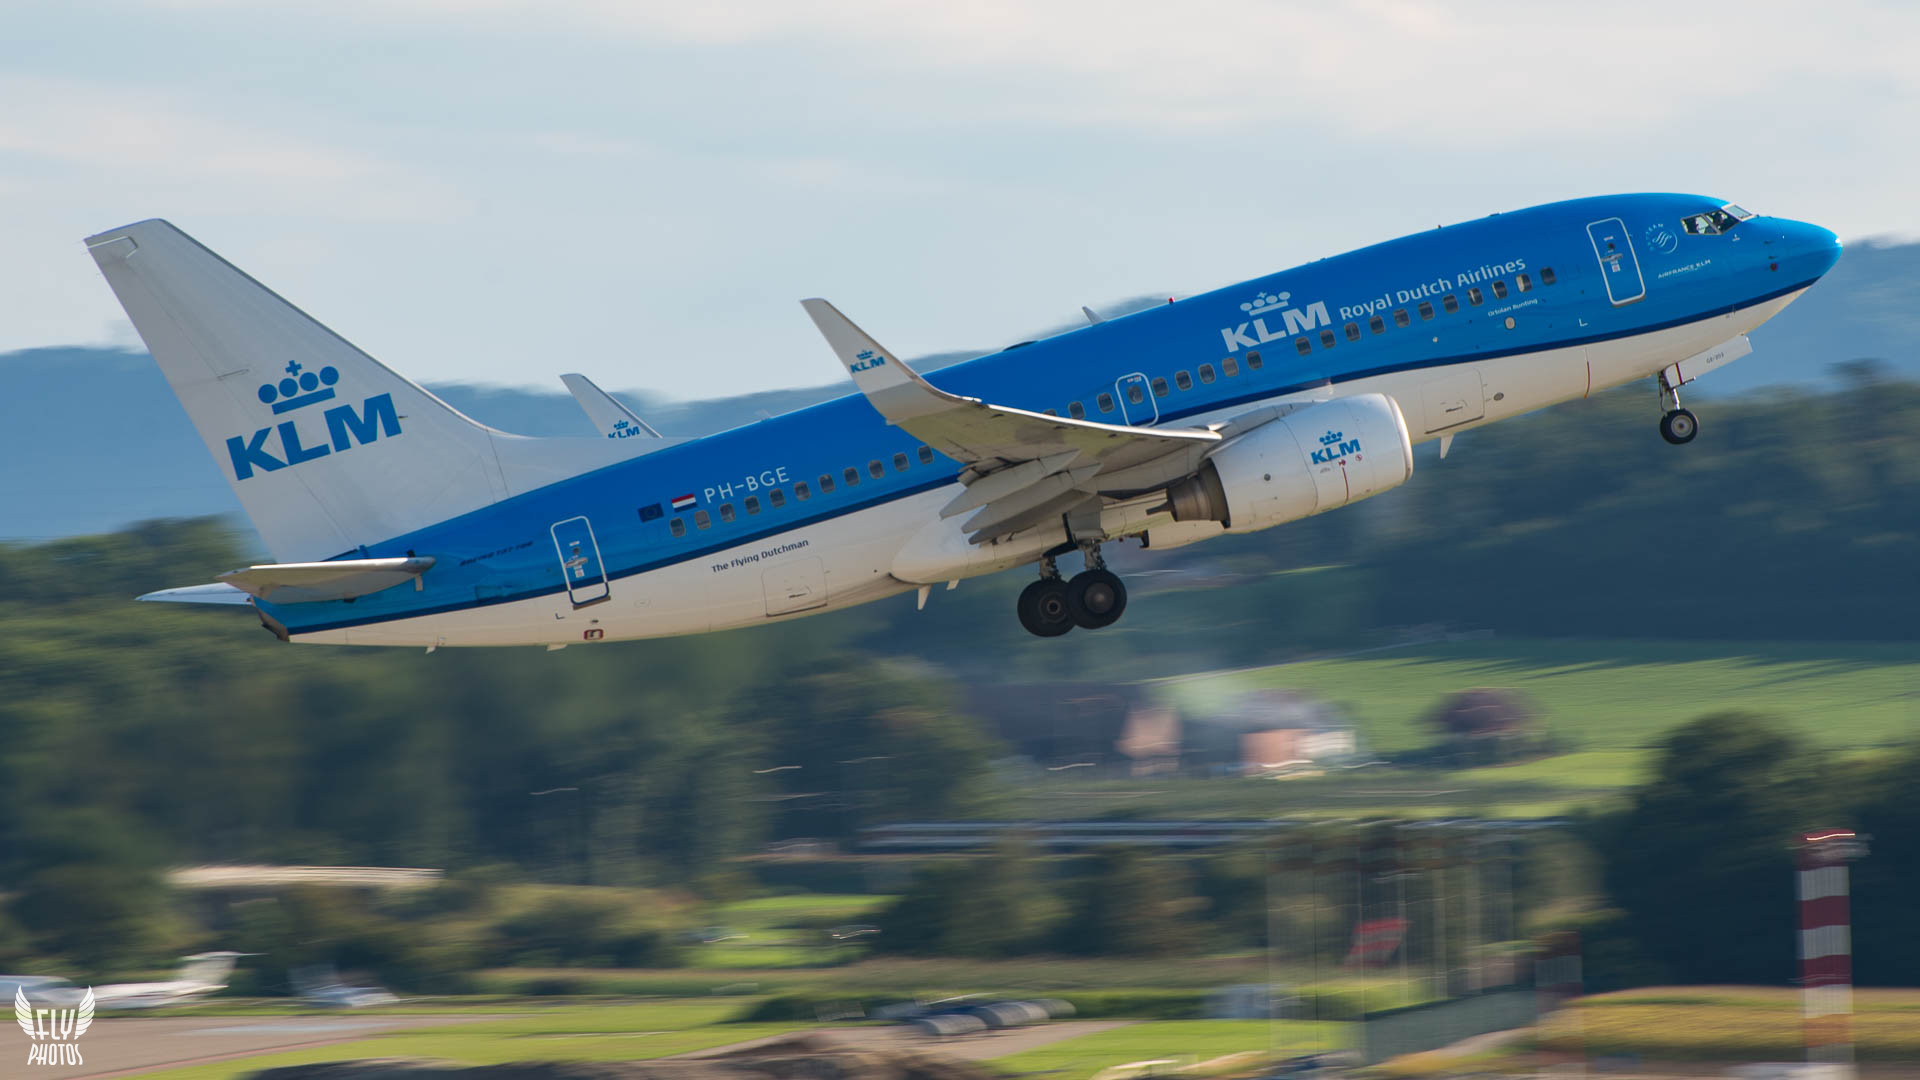 Photo of the day: The Flying Dutchman